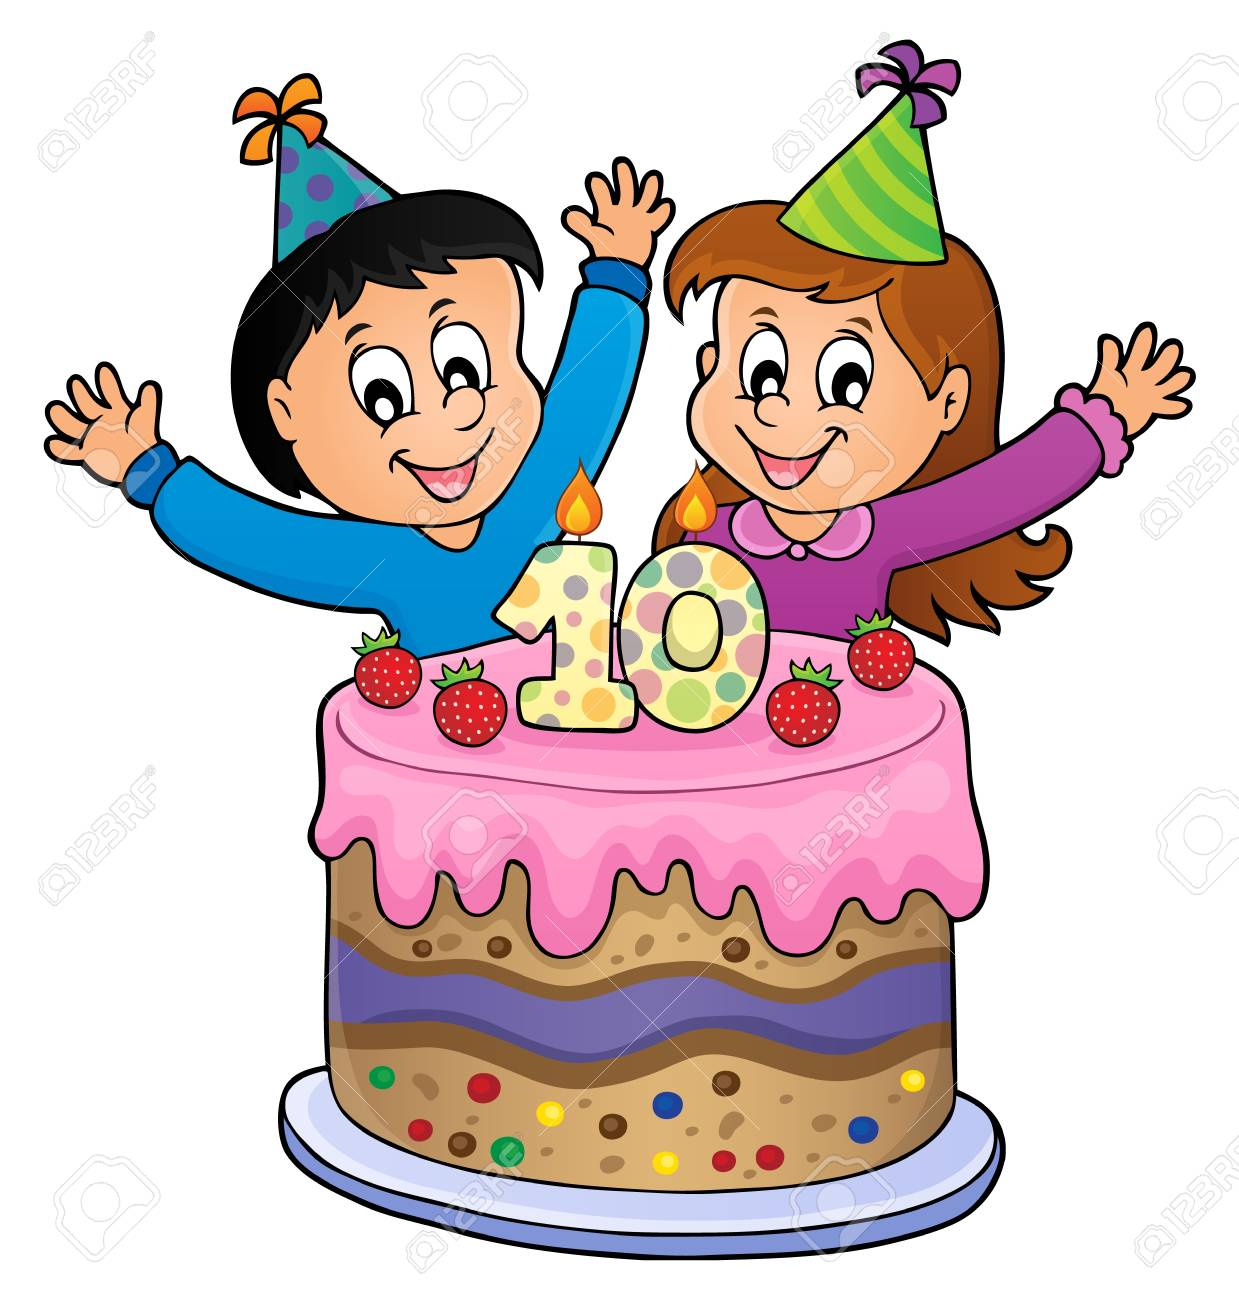 Two Kids Waving Hands In Behind A Birthday Cake With Number 10 Vector Illustration